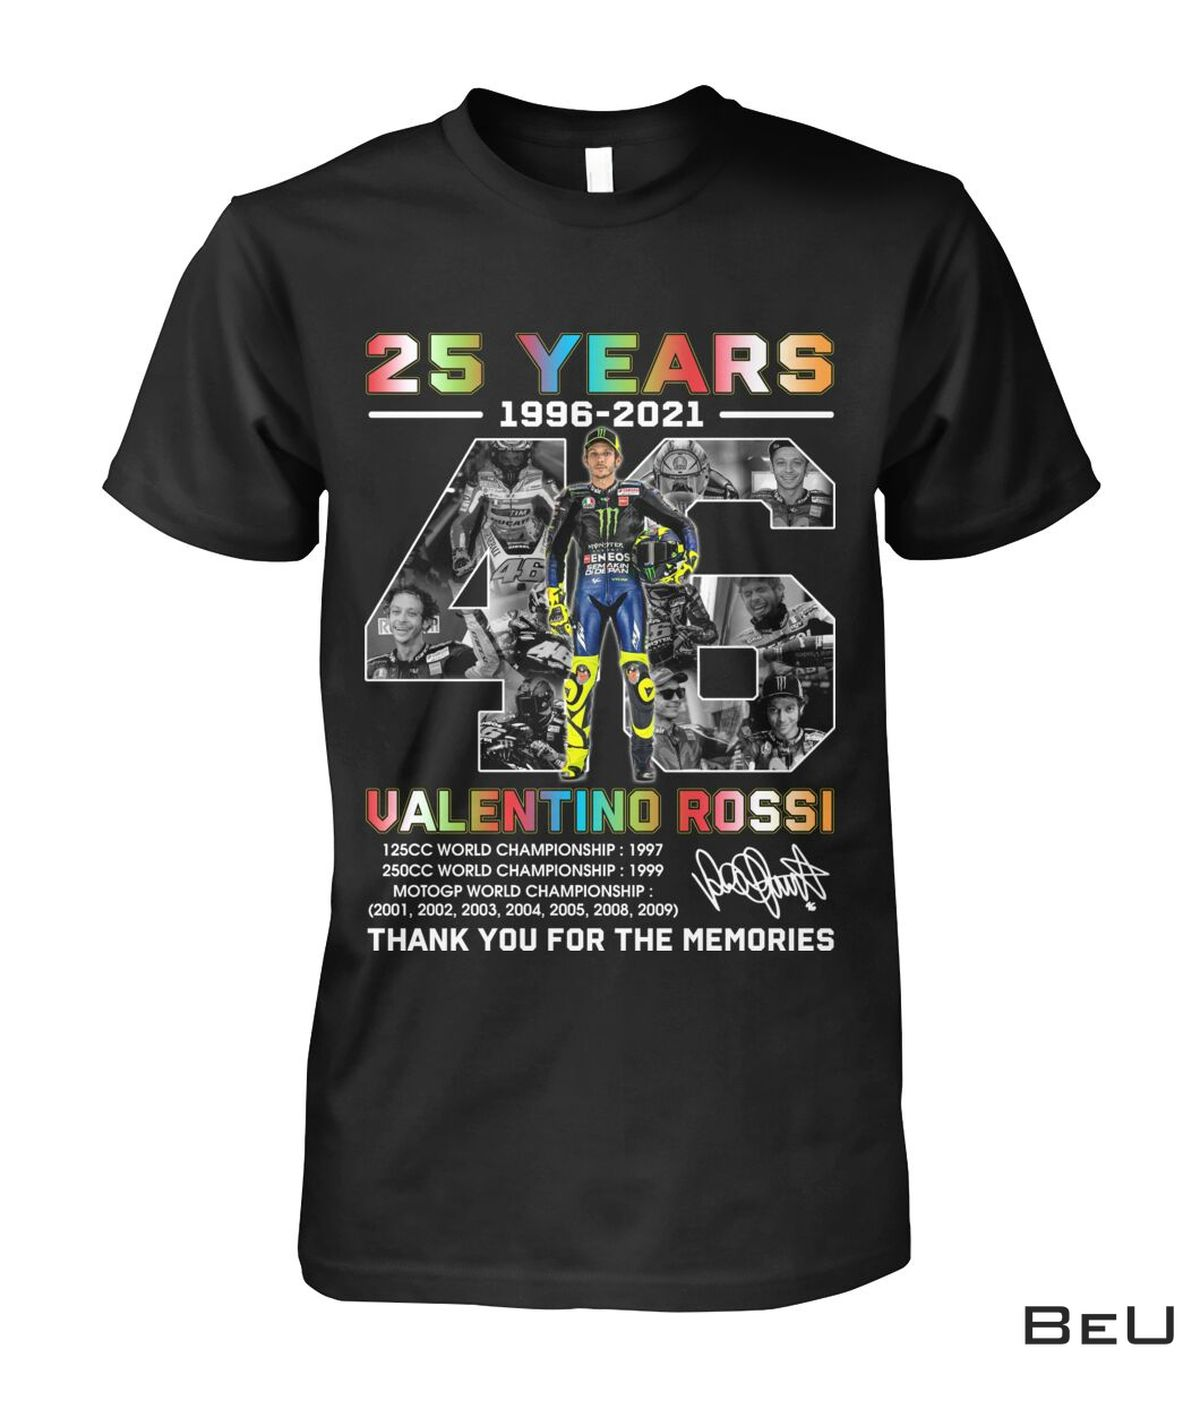 25 Years Valentino Rossi Thank You For The Memories Shirt, hoodie, tank top